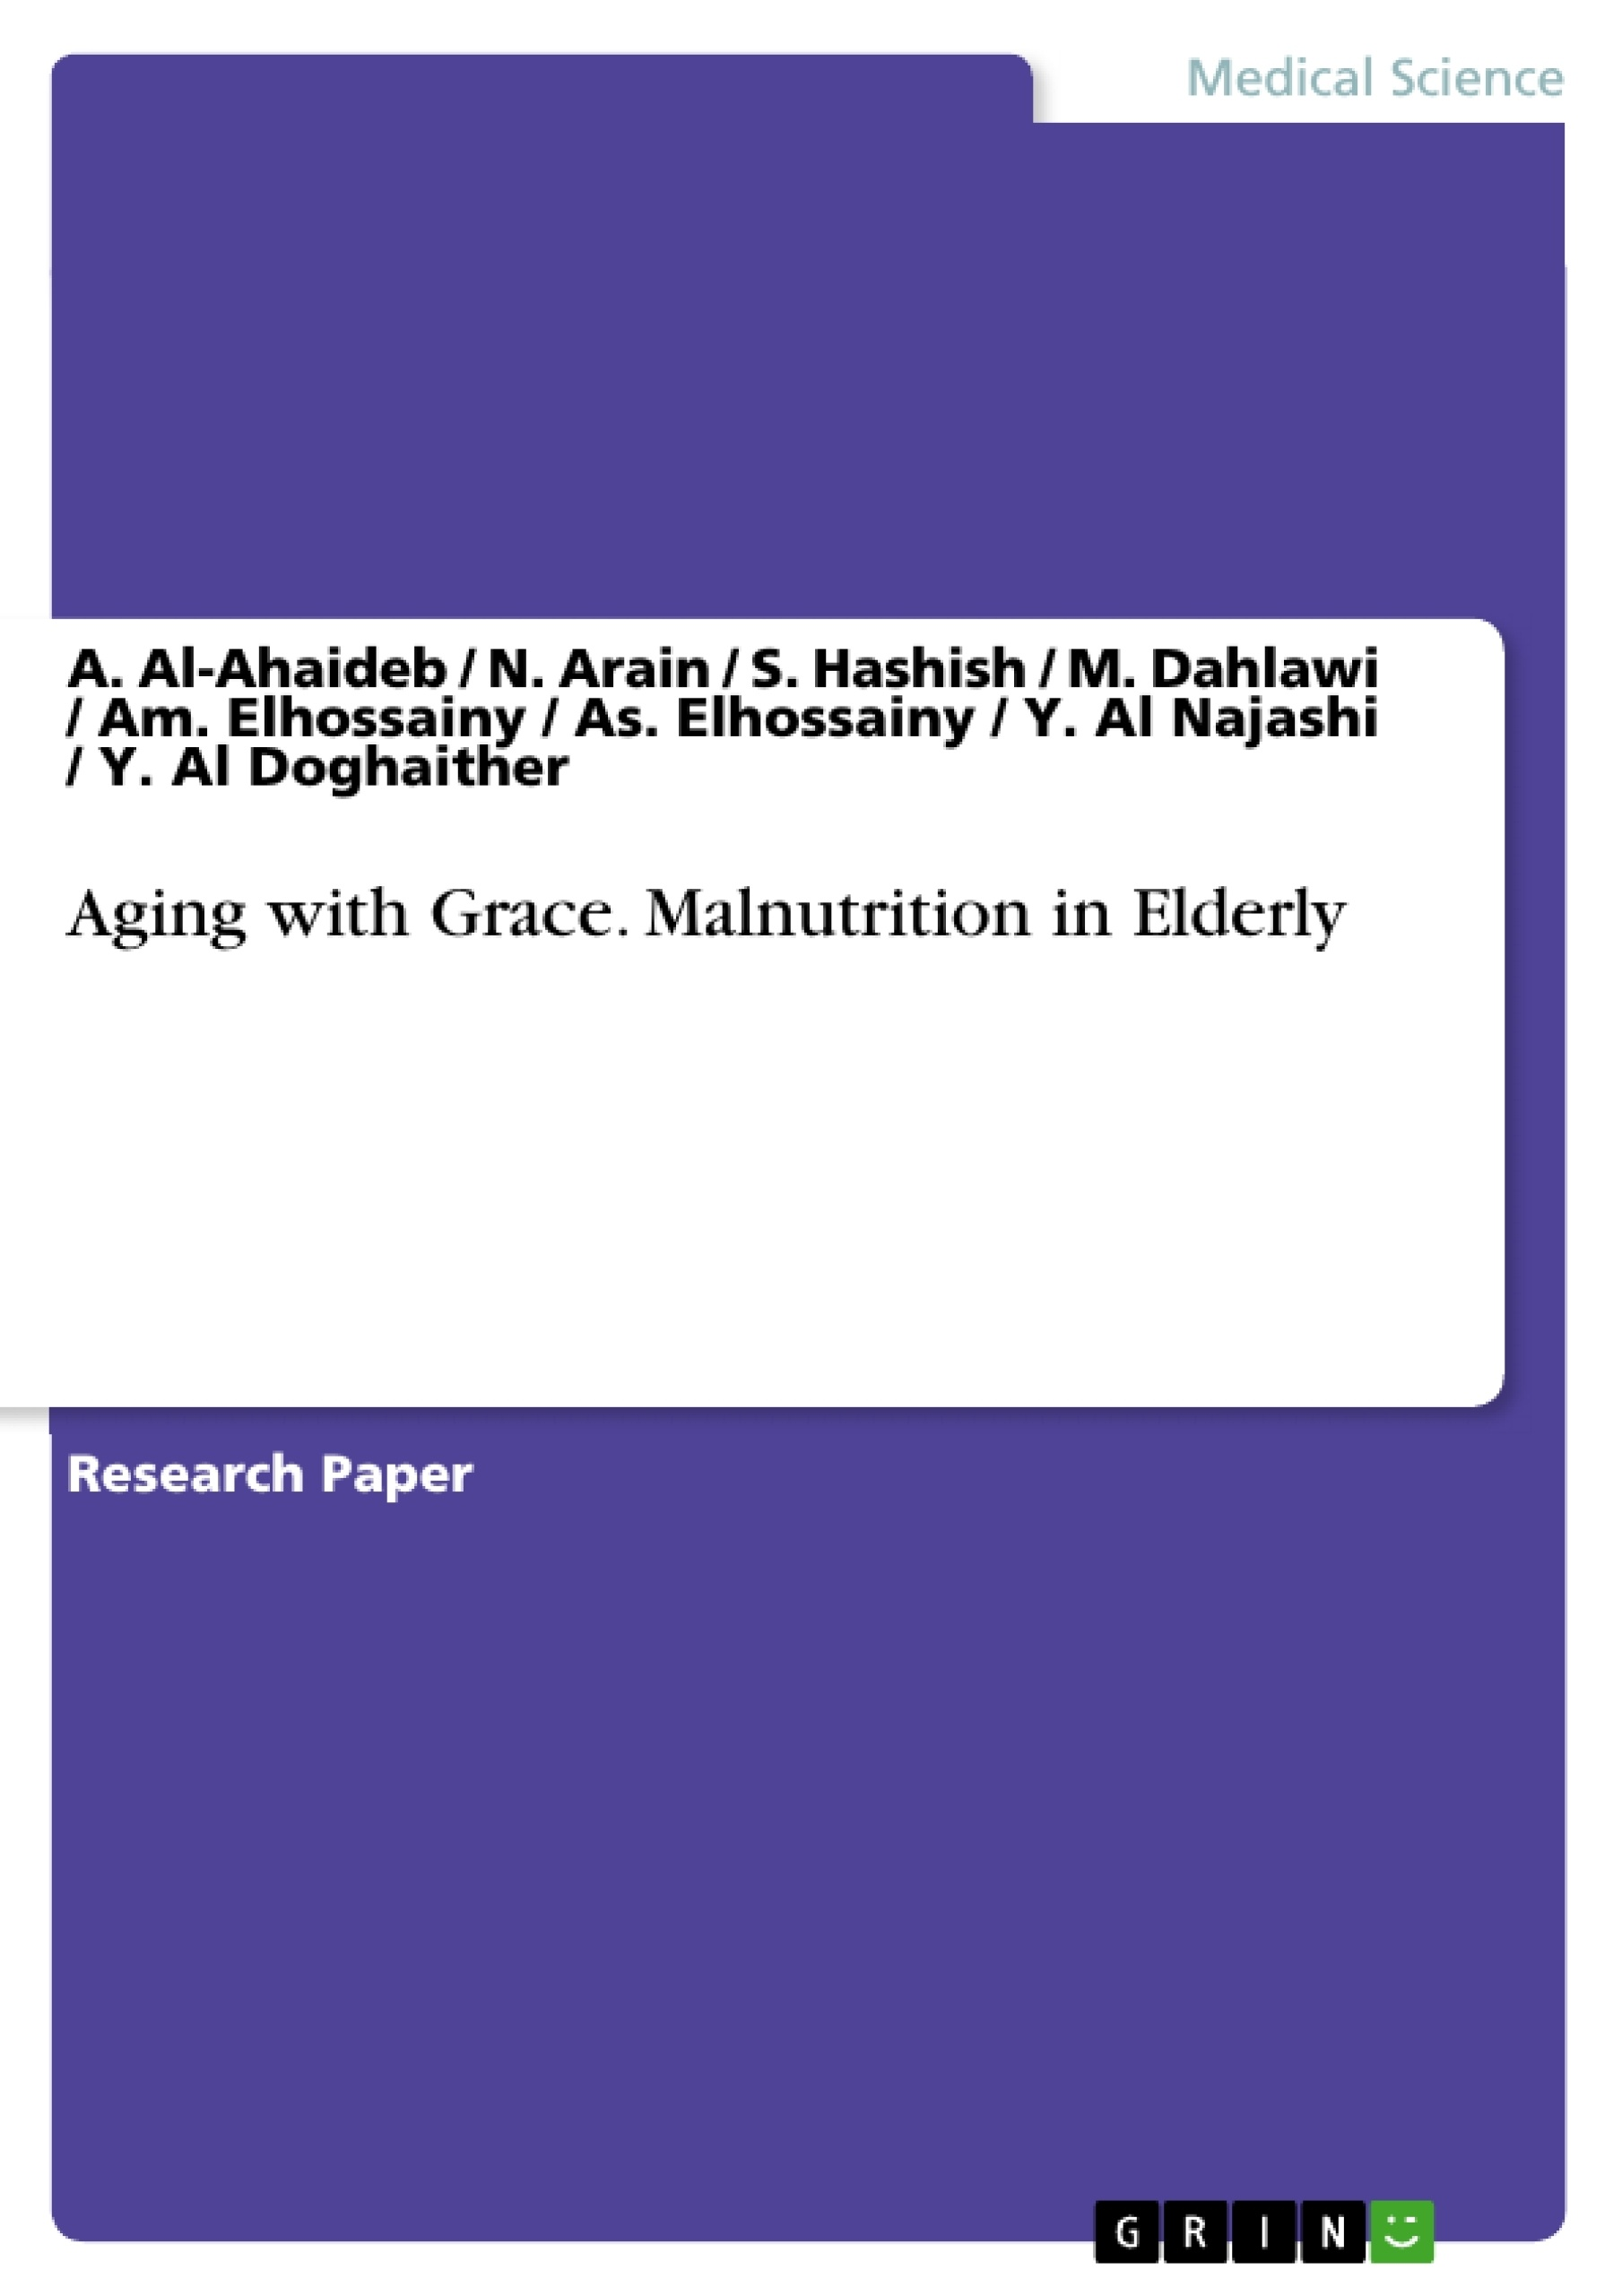 aging grace malnutrition in elderly publish your master s malnutrition in elderly publish your master s thesis bachelor s thesis essay or term paper